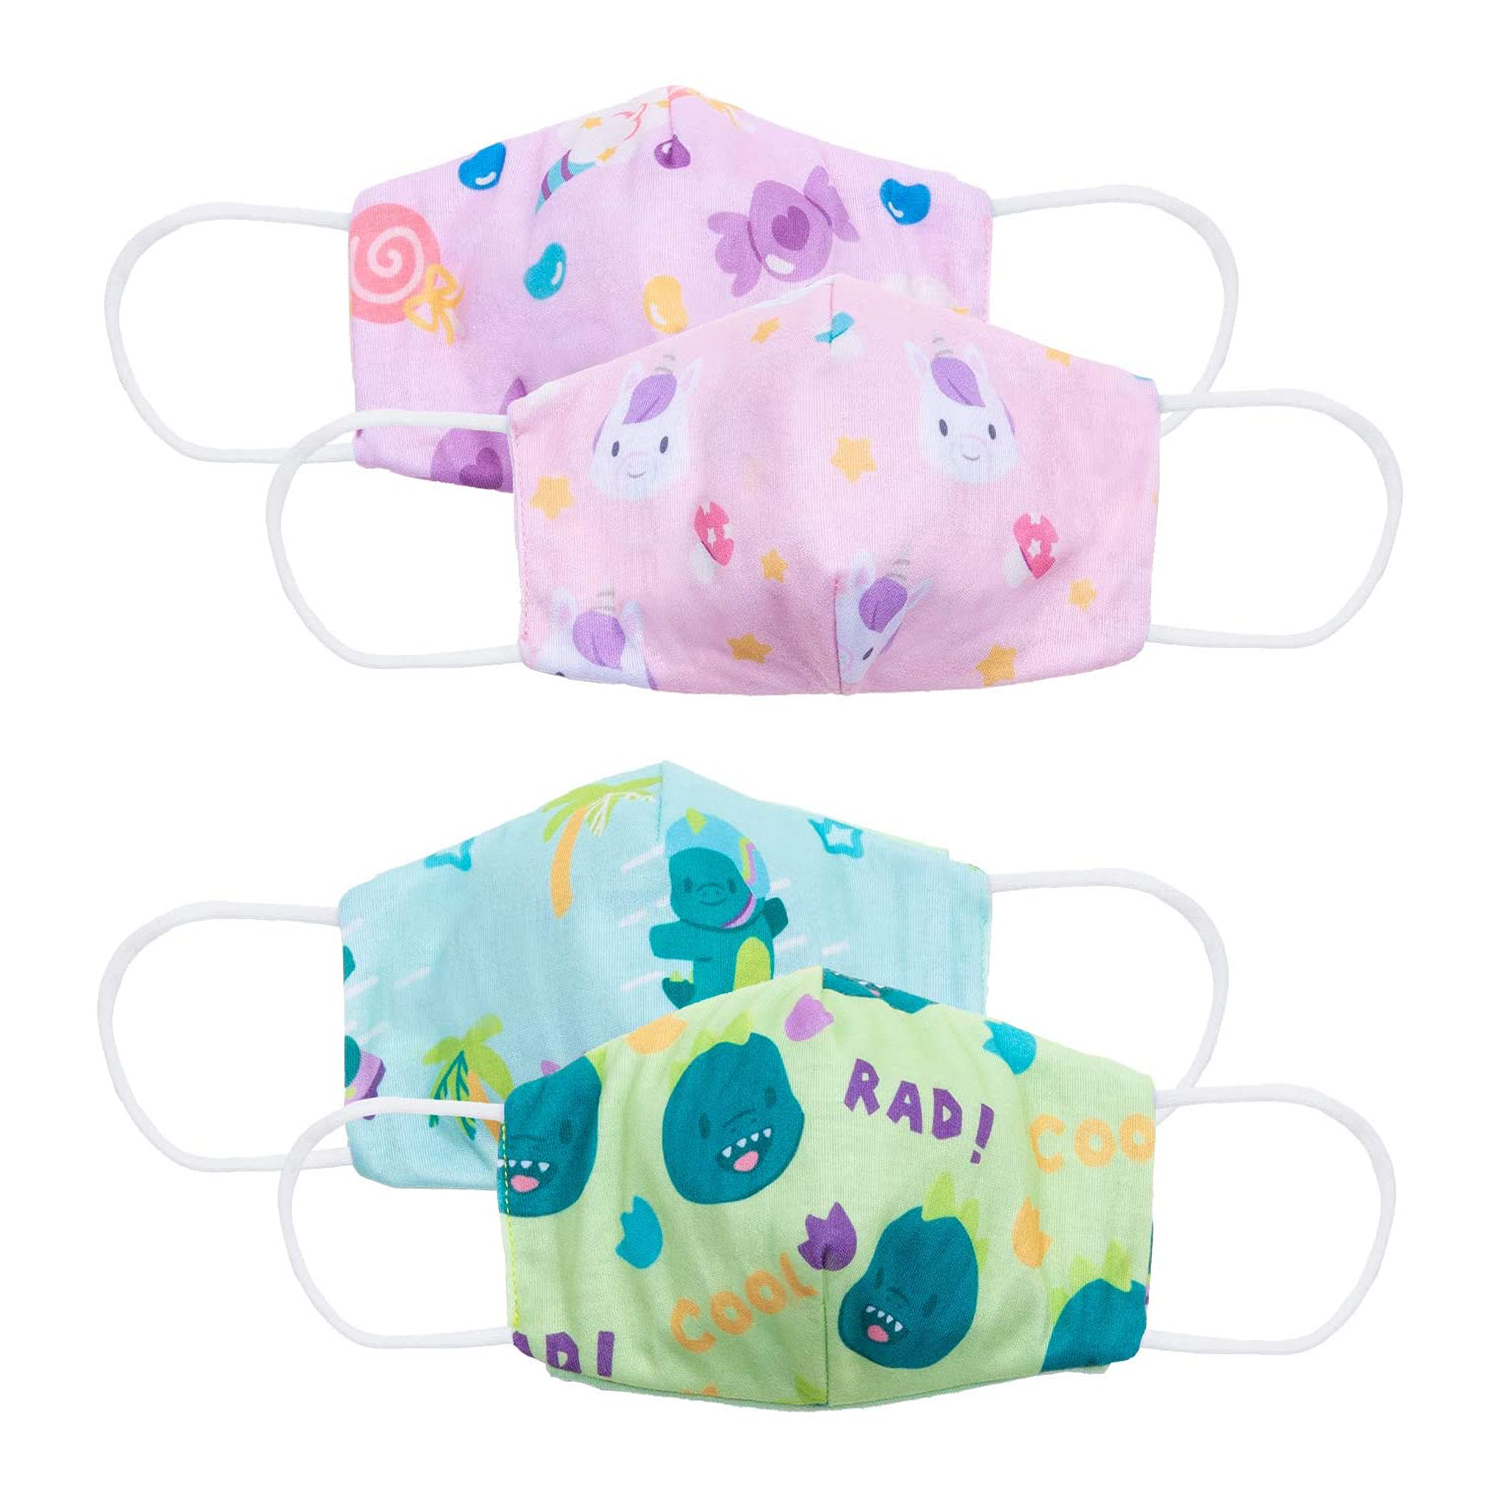 Cubcoats Reversible Kids Face Mask (2-Pack) Double-Sided Reversible Designs with Space for a filter